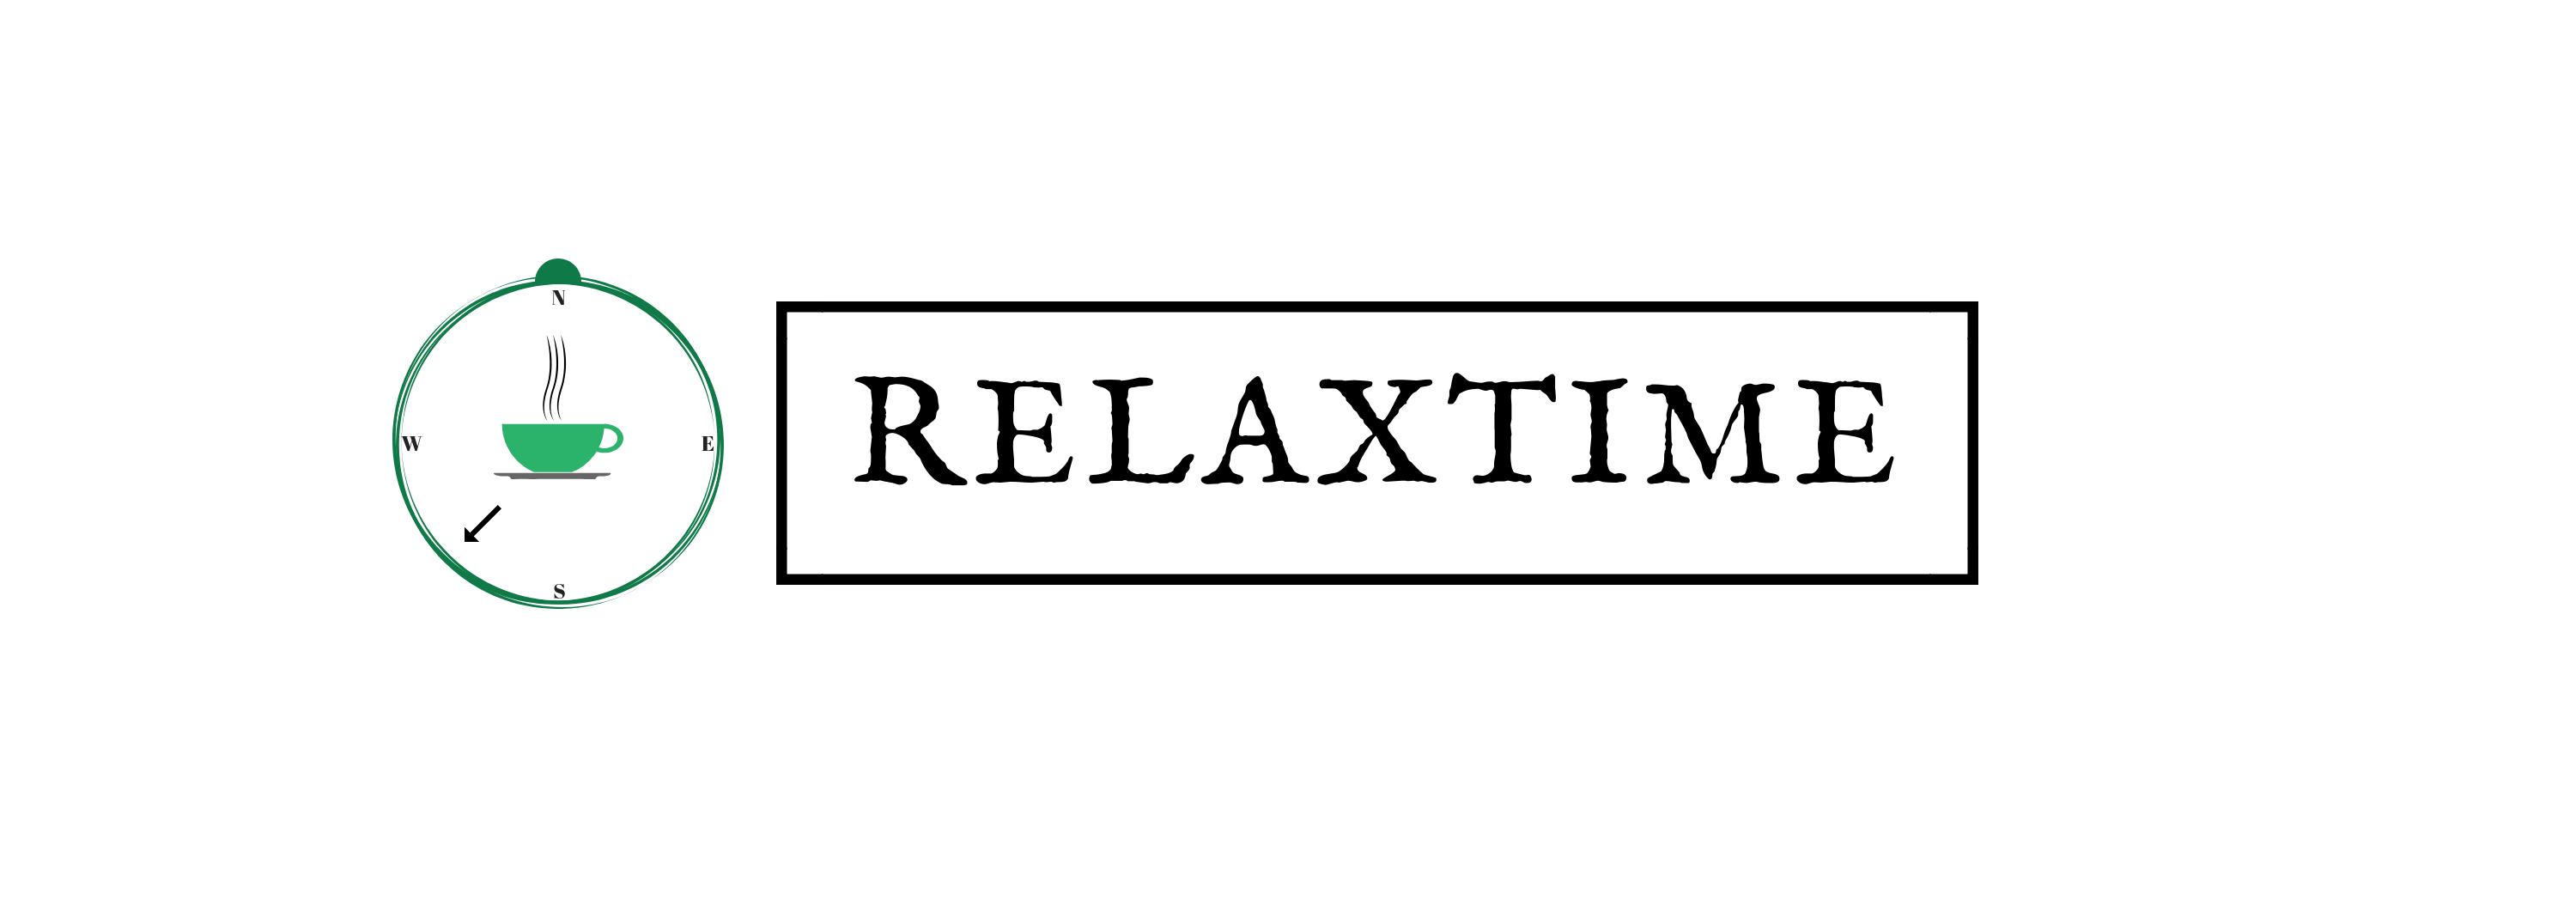 Relaxtime